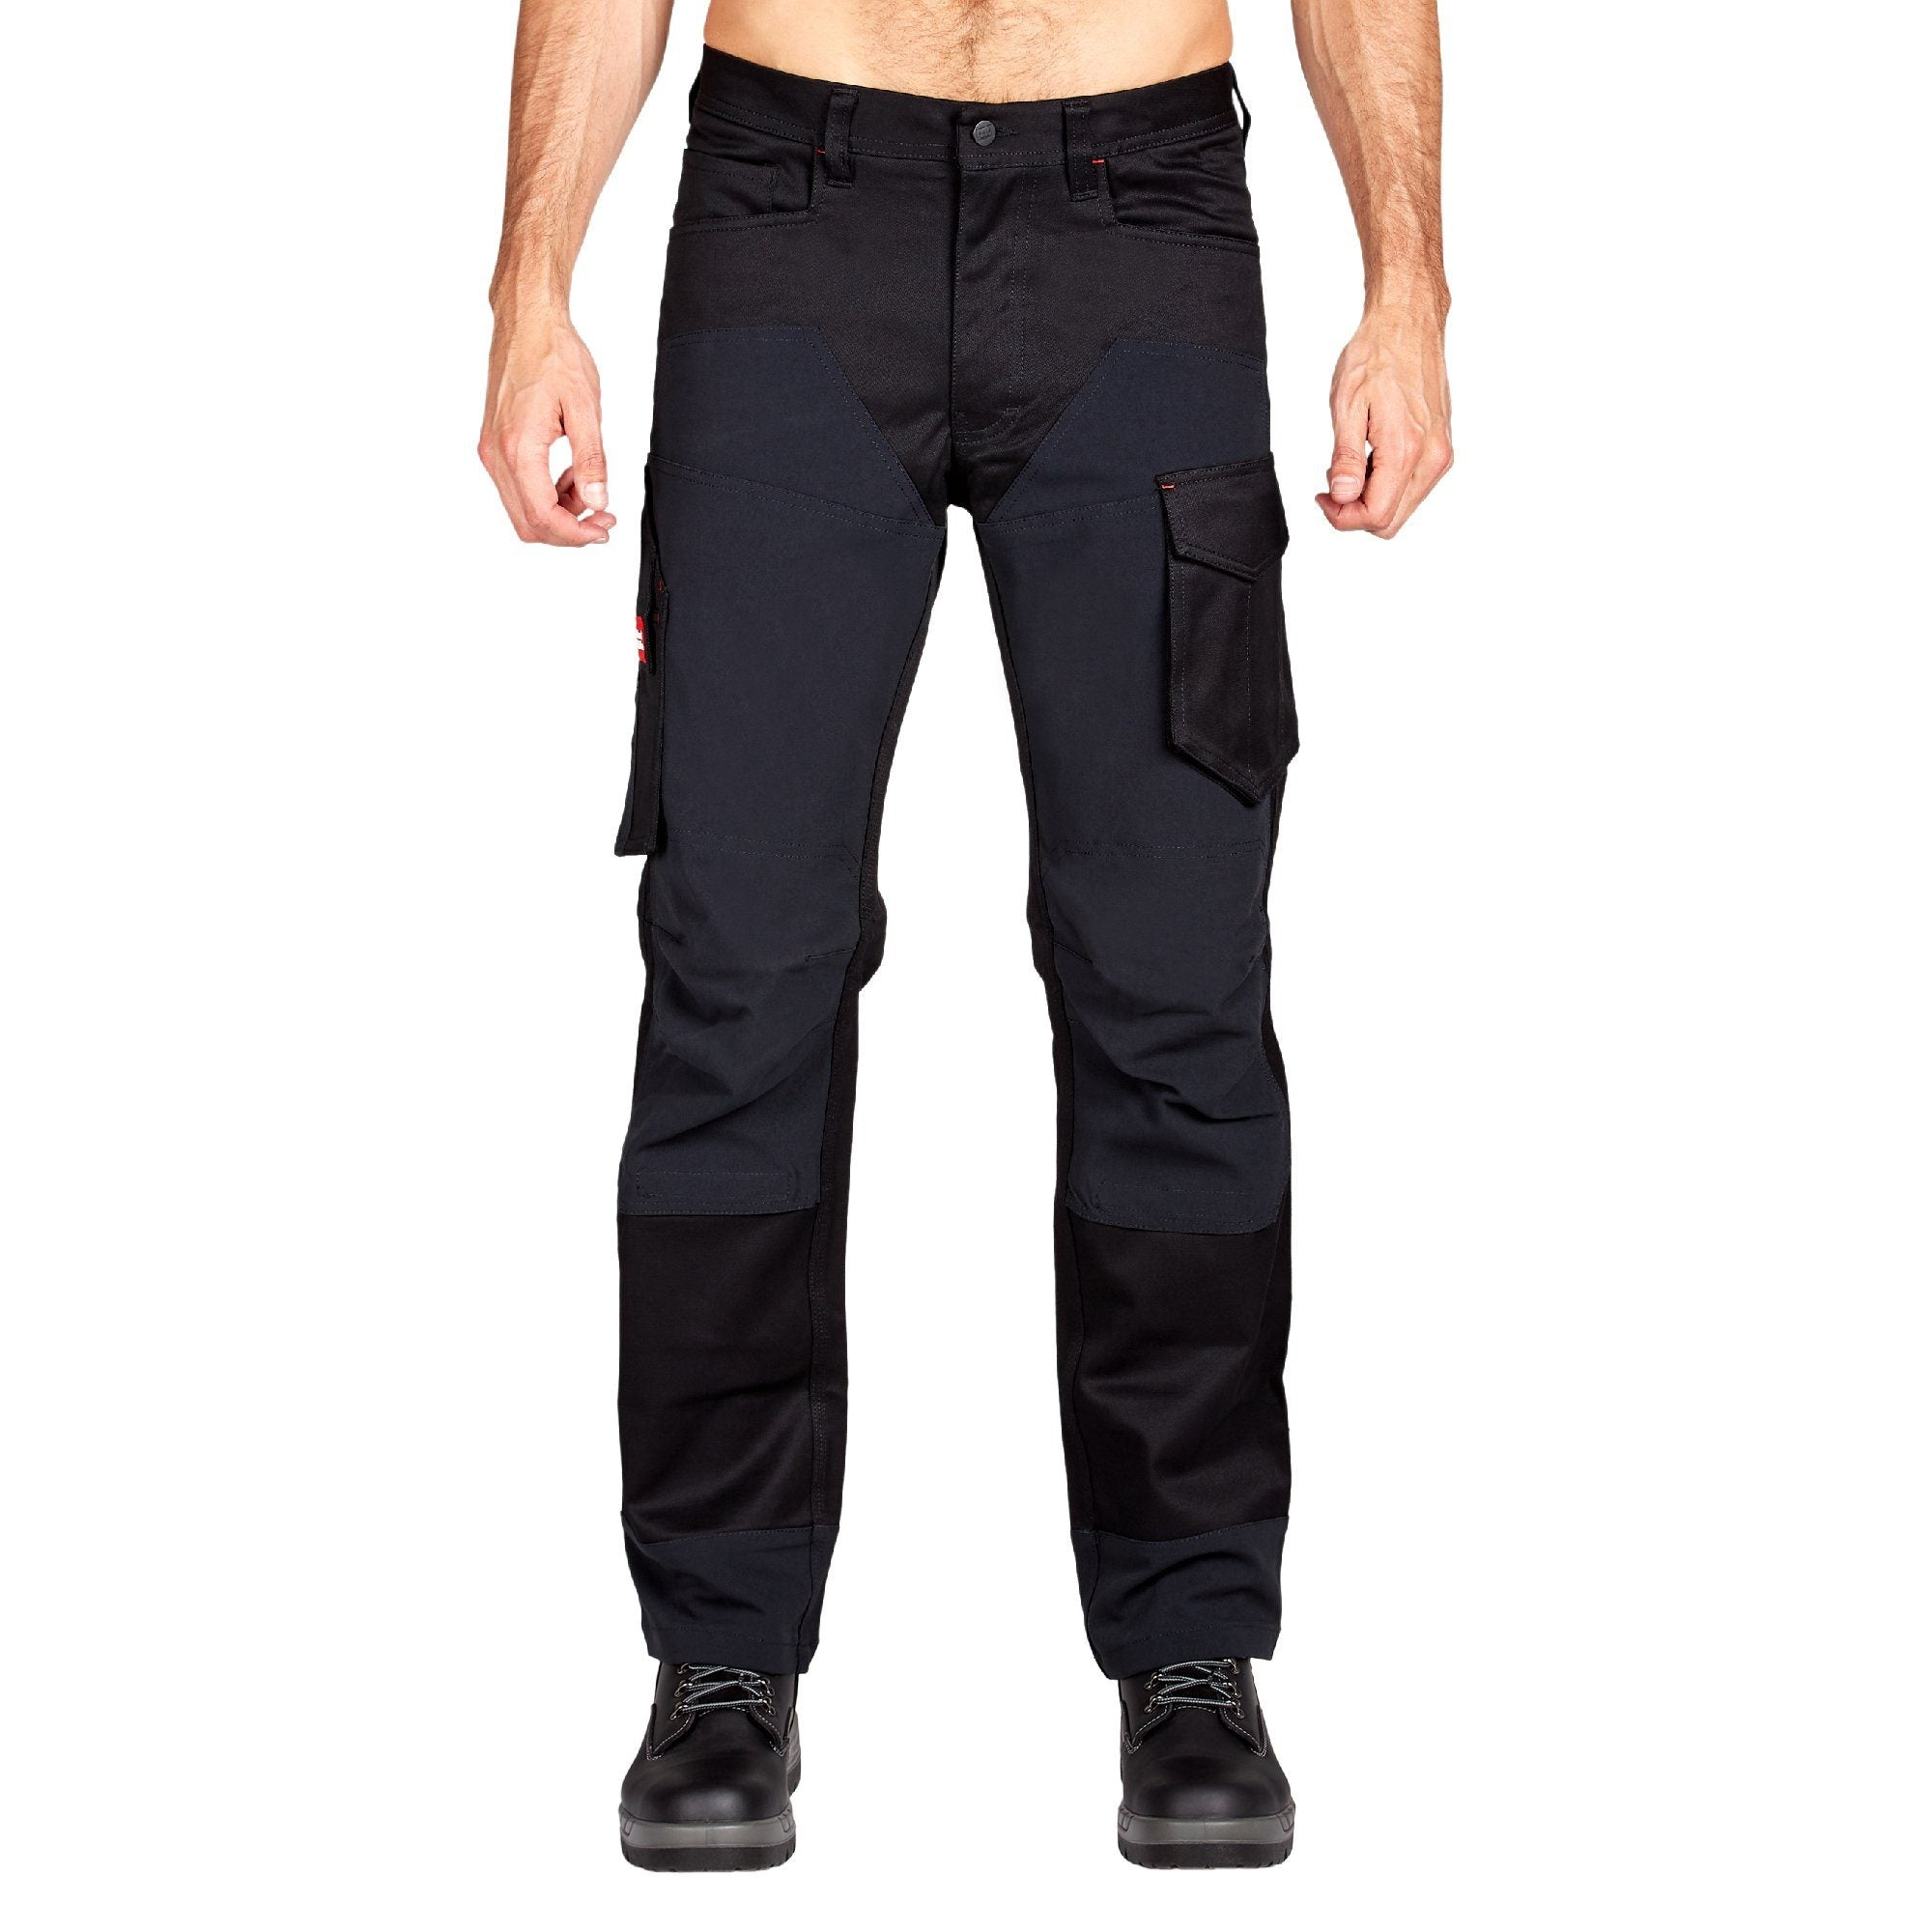 Hard Yakka Legends 3D Stretch Pants - Black/Black Workwear Isbister & Co